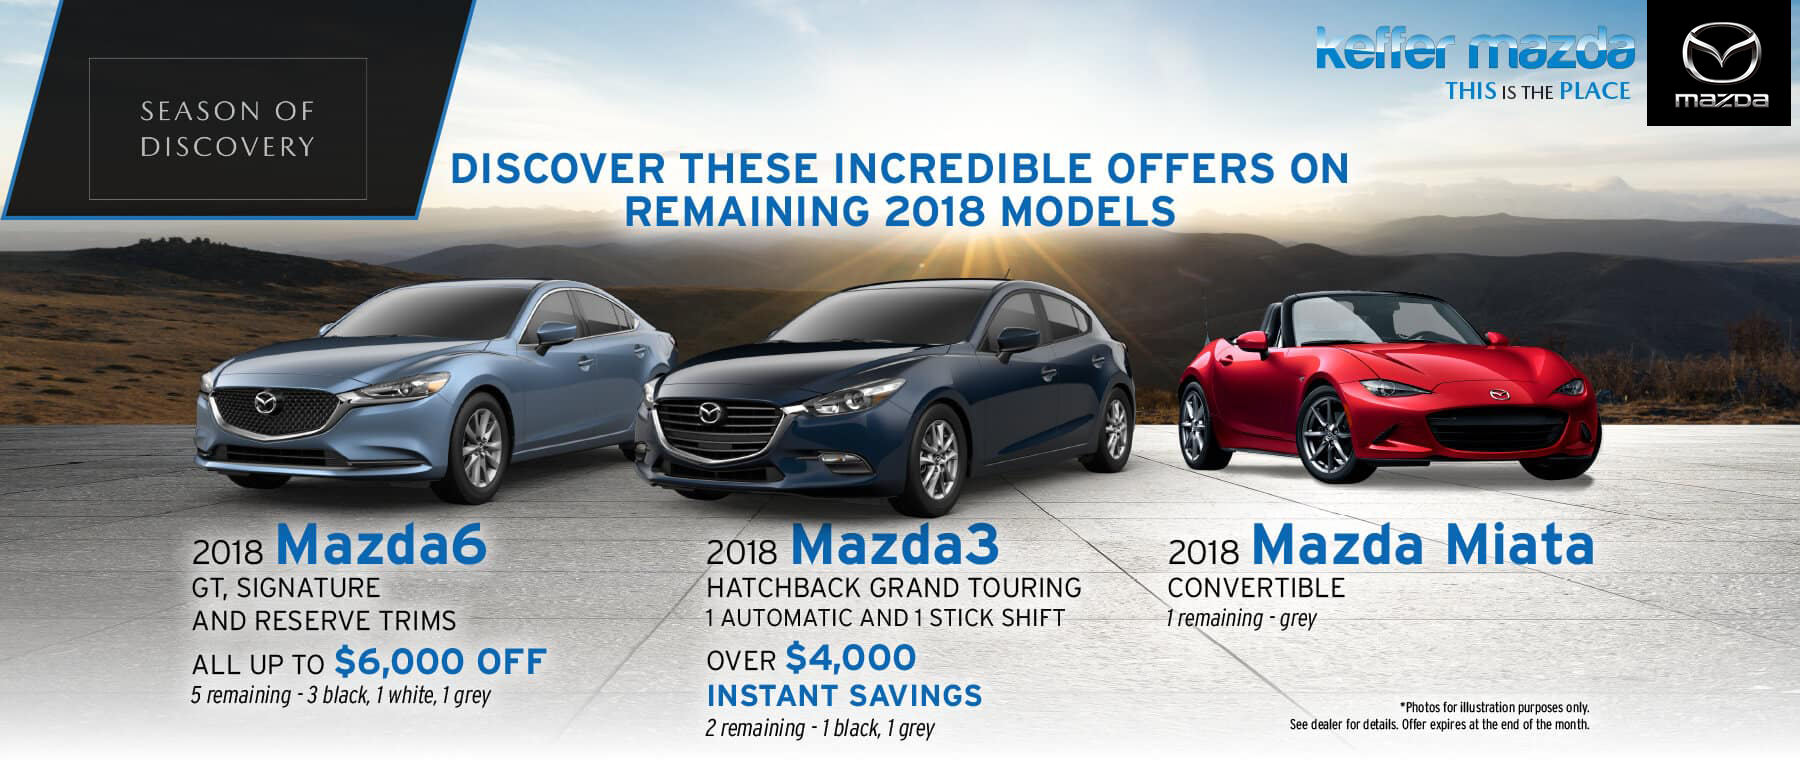 Discover these incredible offers on remaining 2018 vehicles